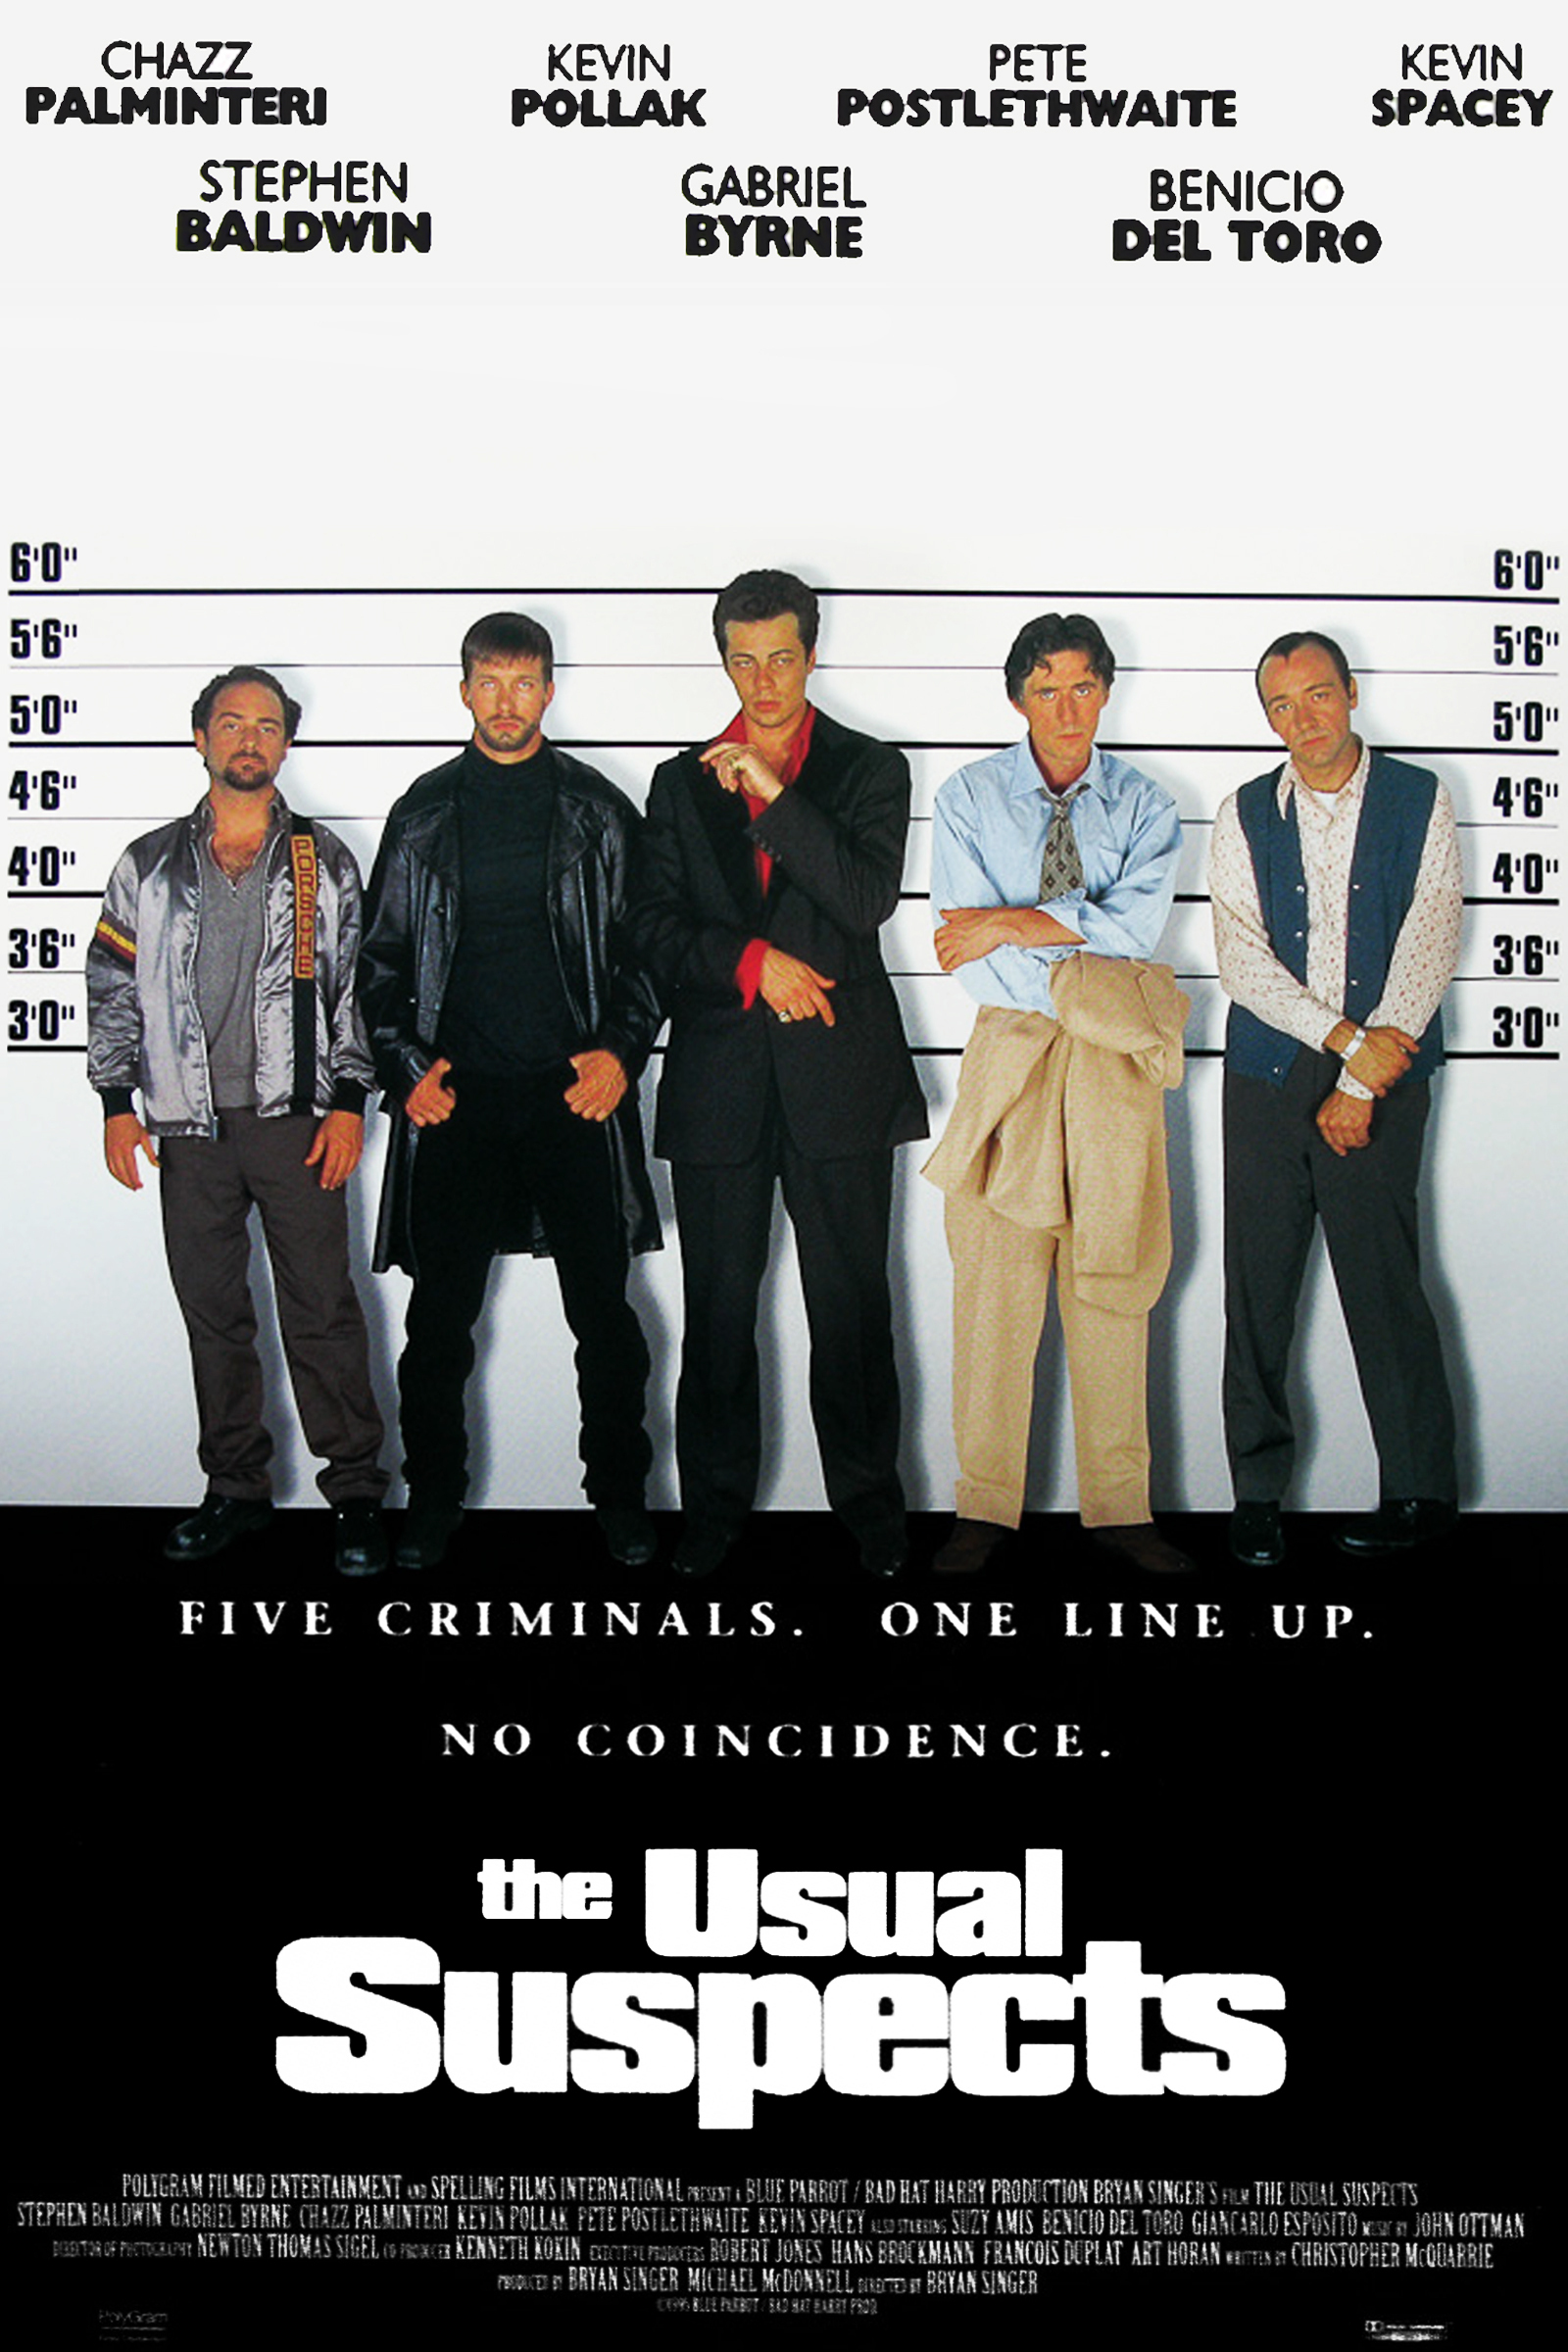 theUsualSuspects_1416603356.jpg